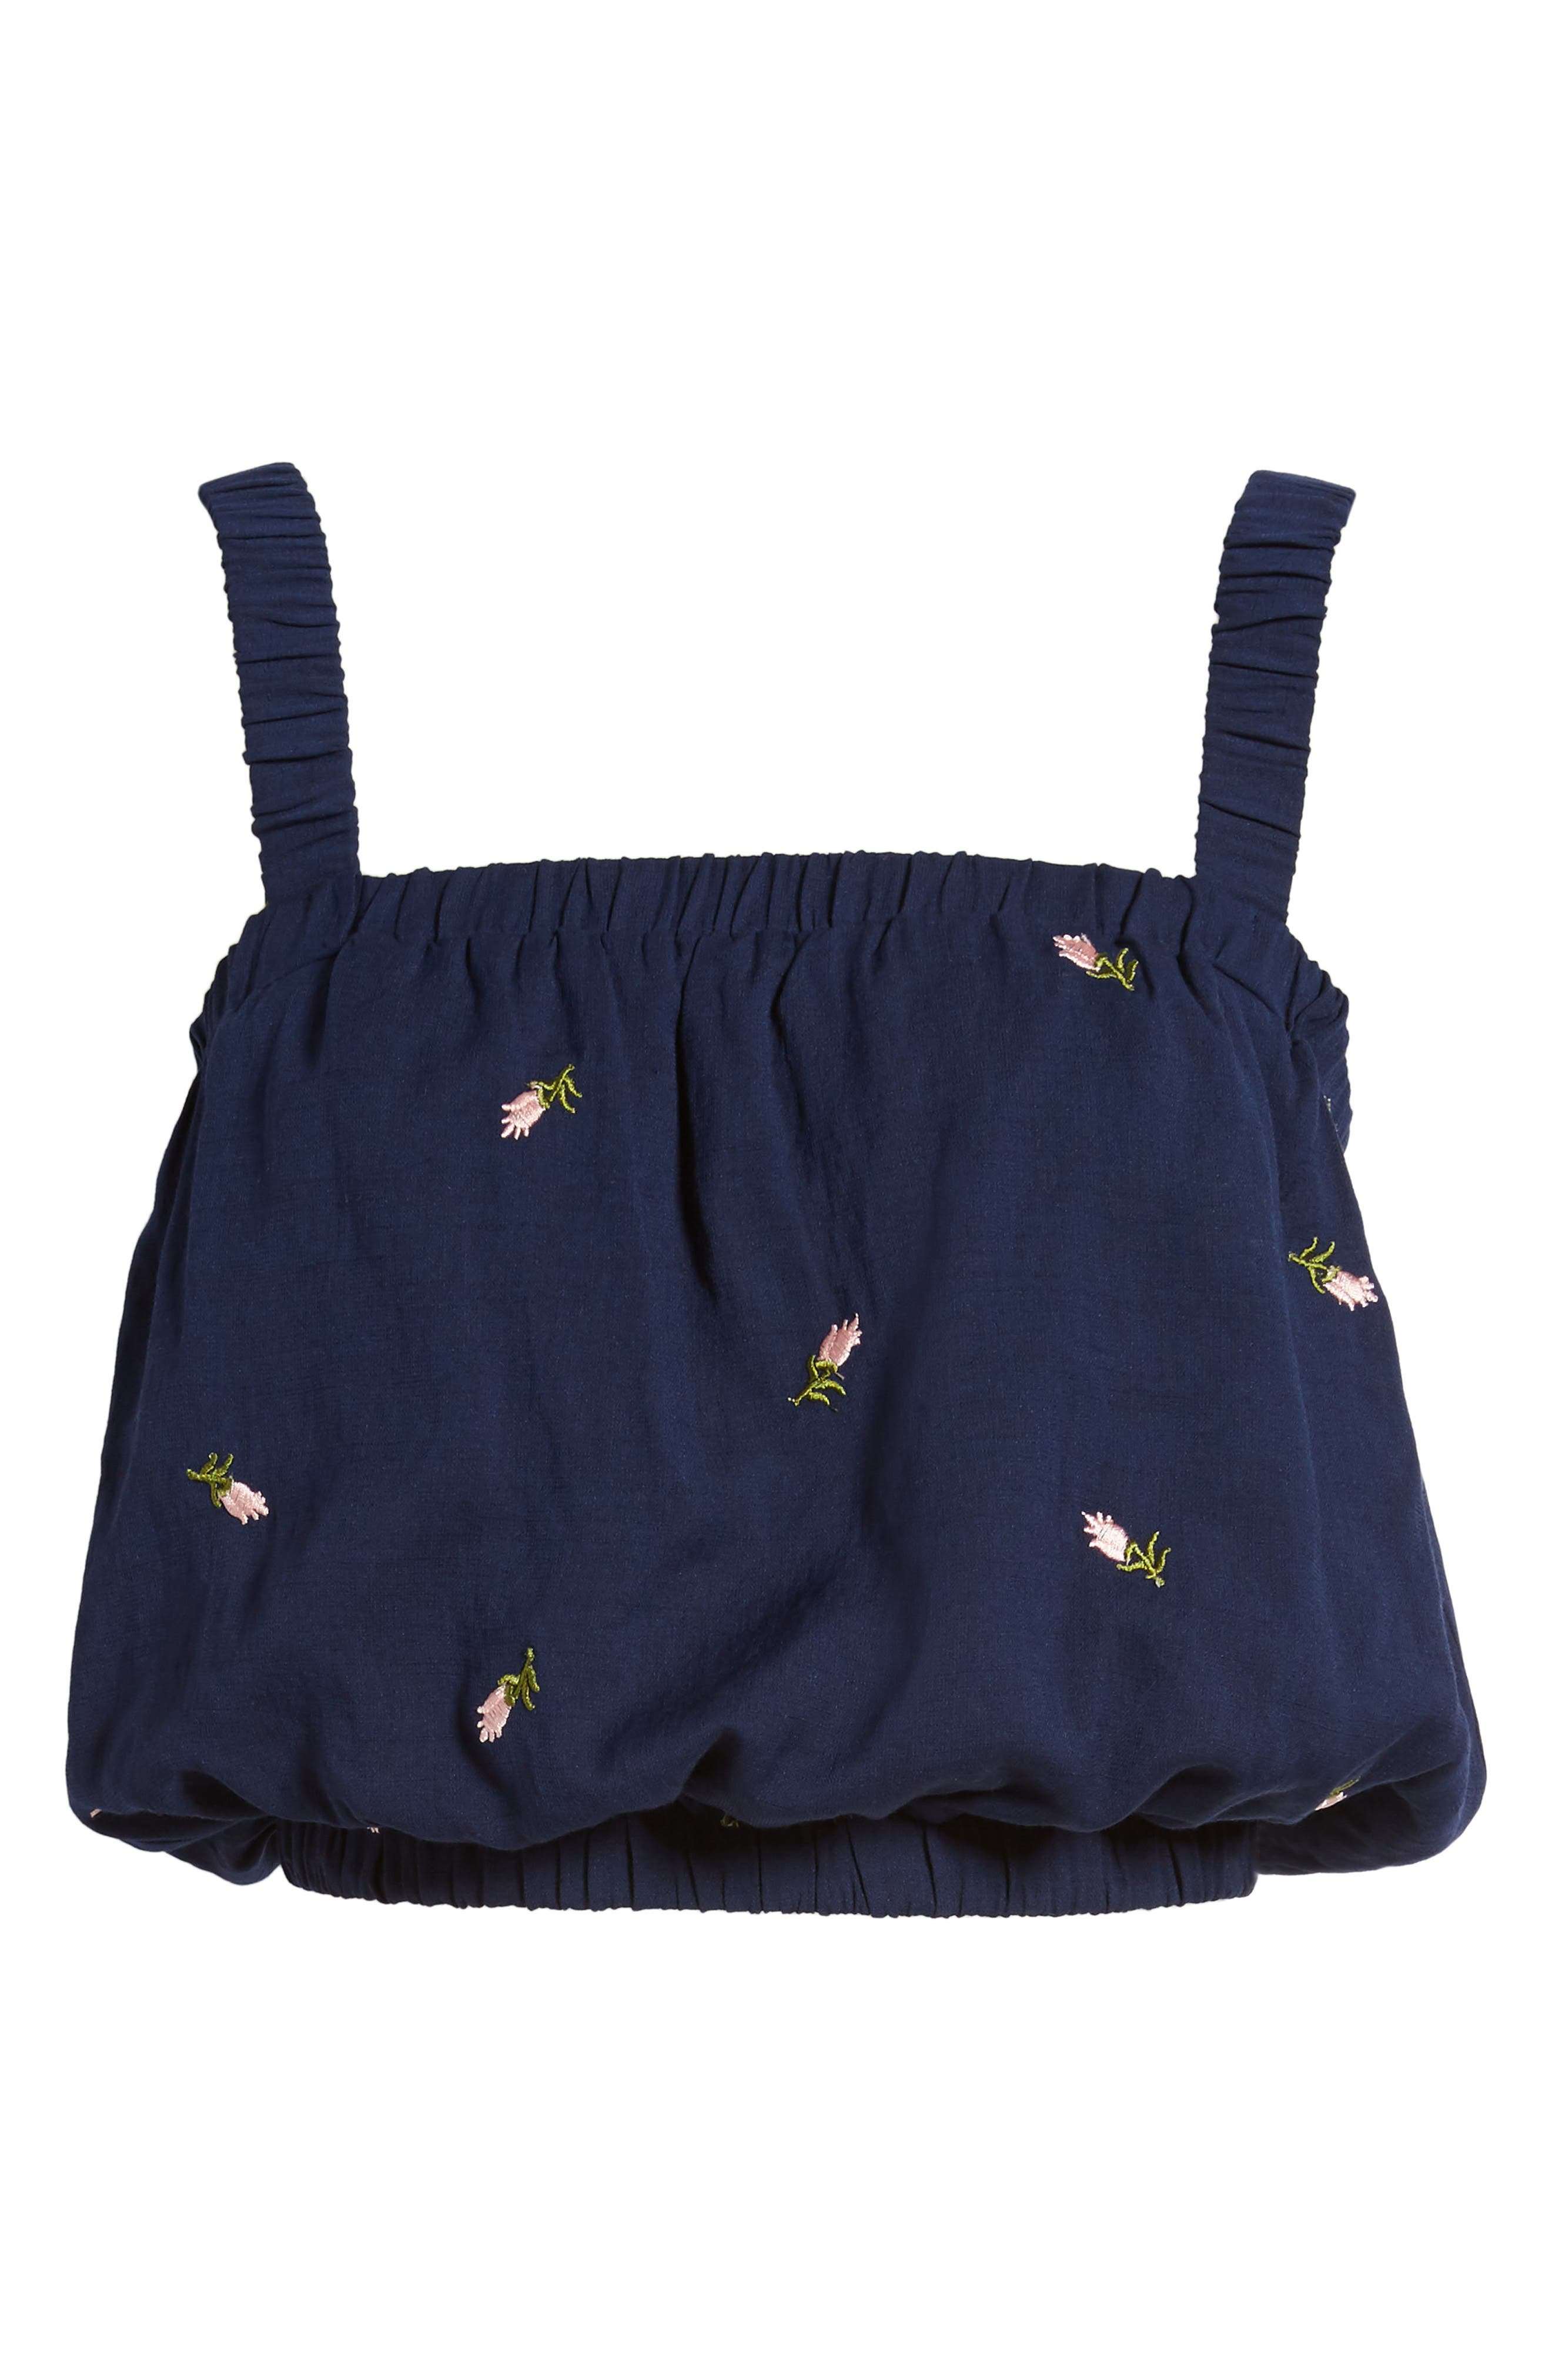 Embroidered Crop Top,                             Alternate thumbnail 6, color,                             Navy